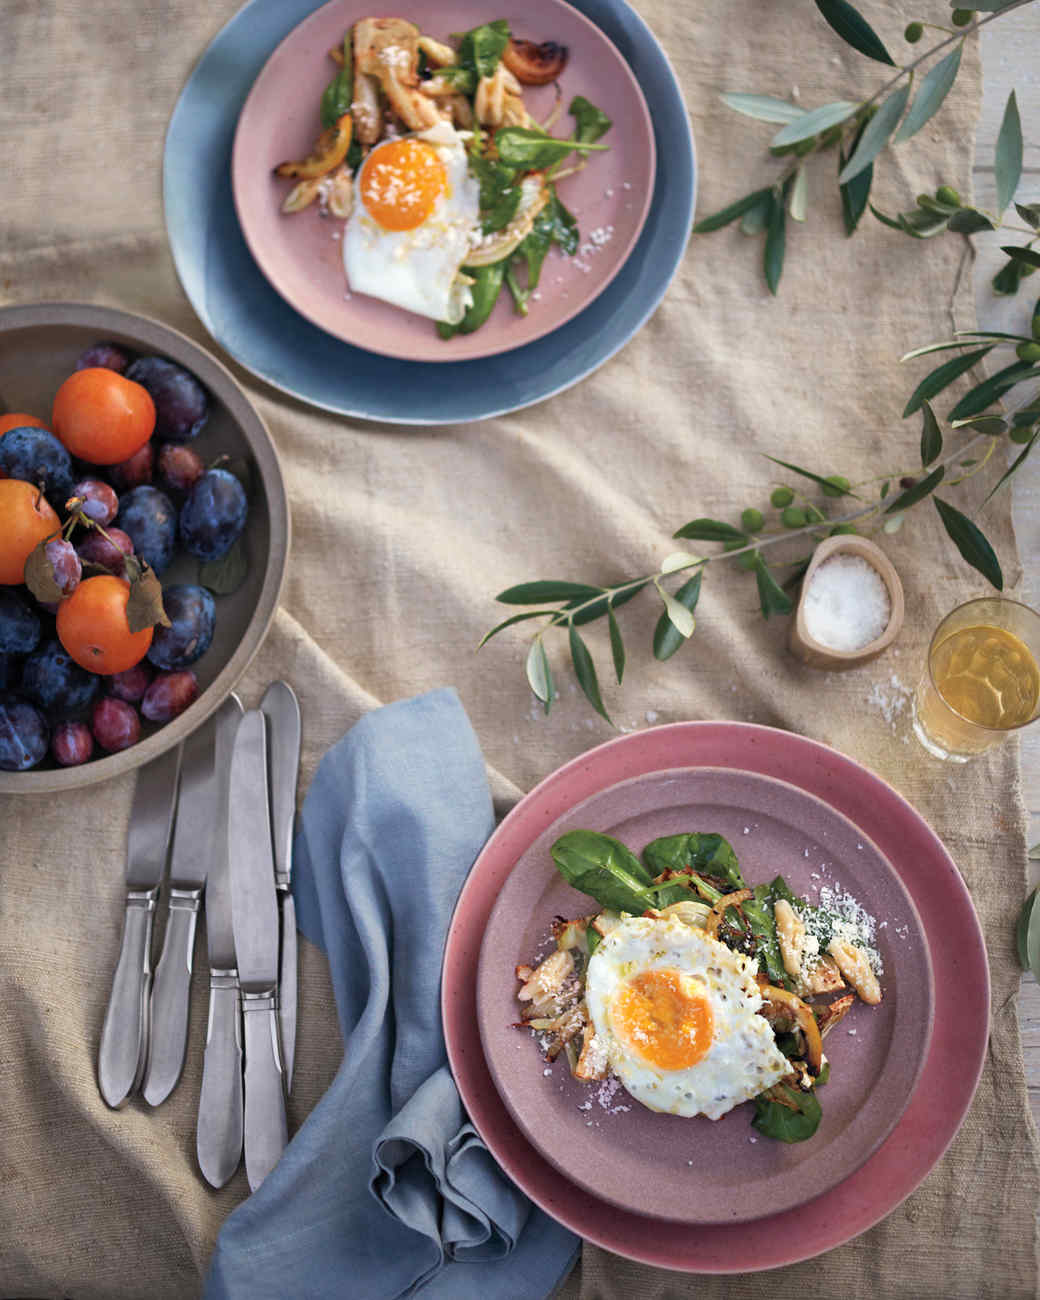 Cavatelli with Spinach, Caramelized Fennel, and Fried Eggs